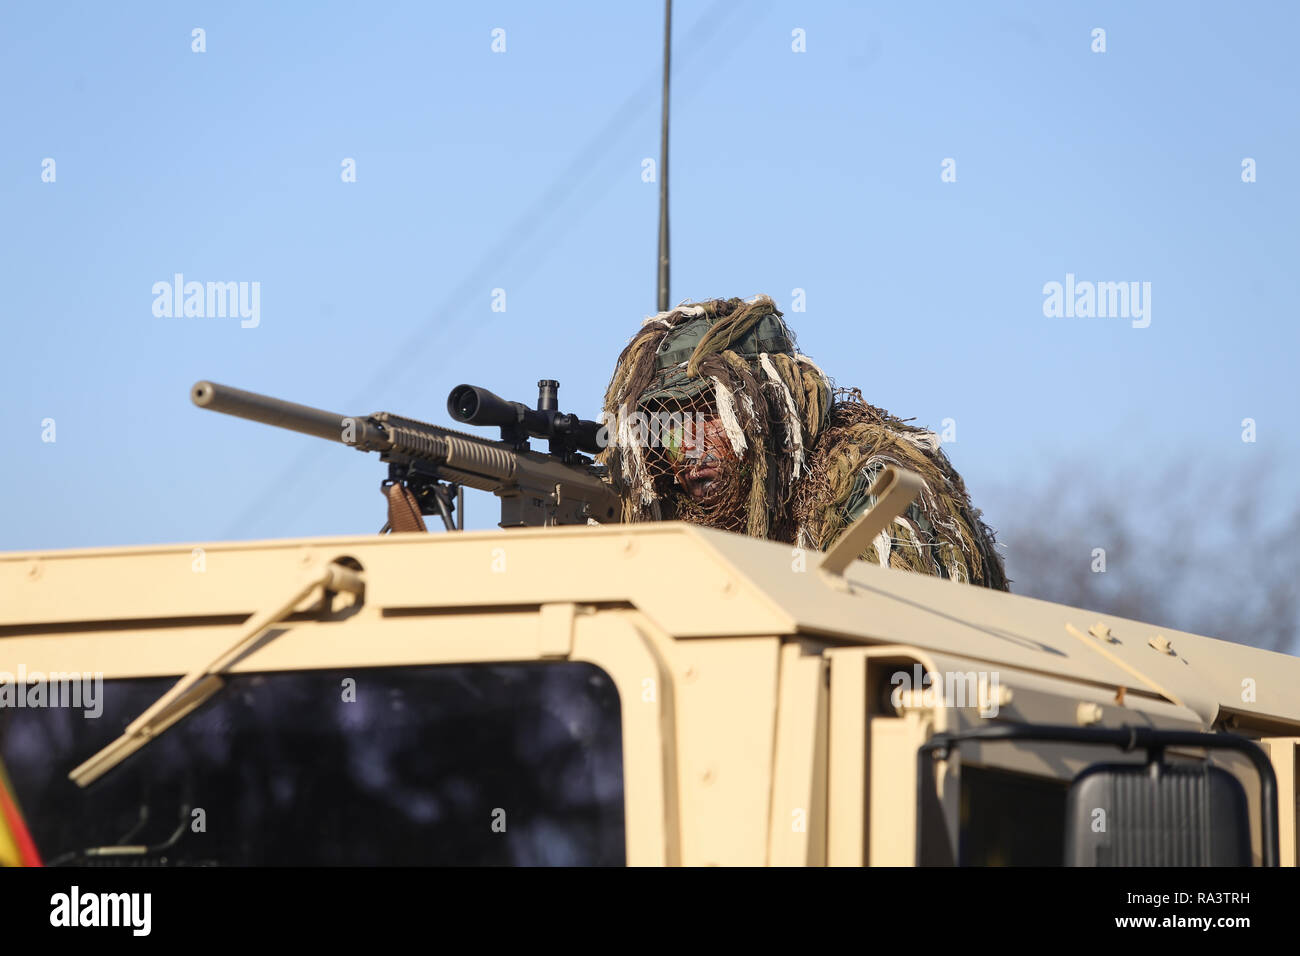 Bucharest, Romania - December 1, 2018: Romanian army sniper, armed with the US M110 semi-automatic sniper rifle and on top of a Humvee armored vehicle Stock Photo